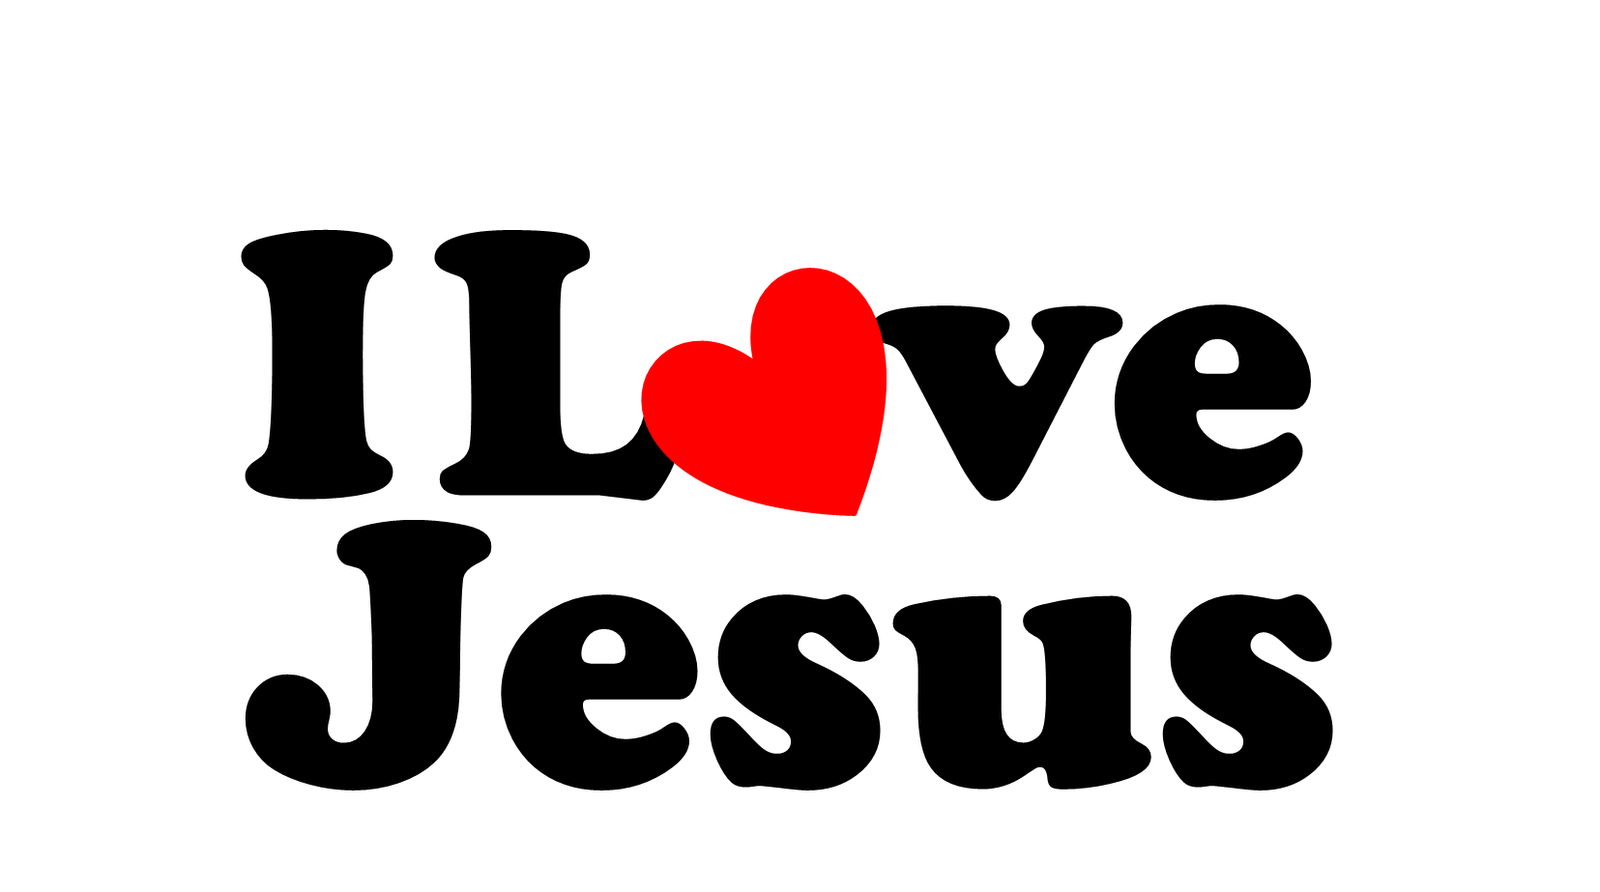 Wallpaper Jesus Love Me Bergerak : I Love Jesus Wallpapers - Wallpaper cave